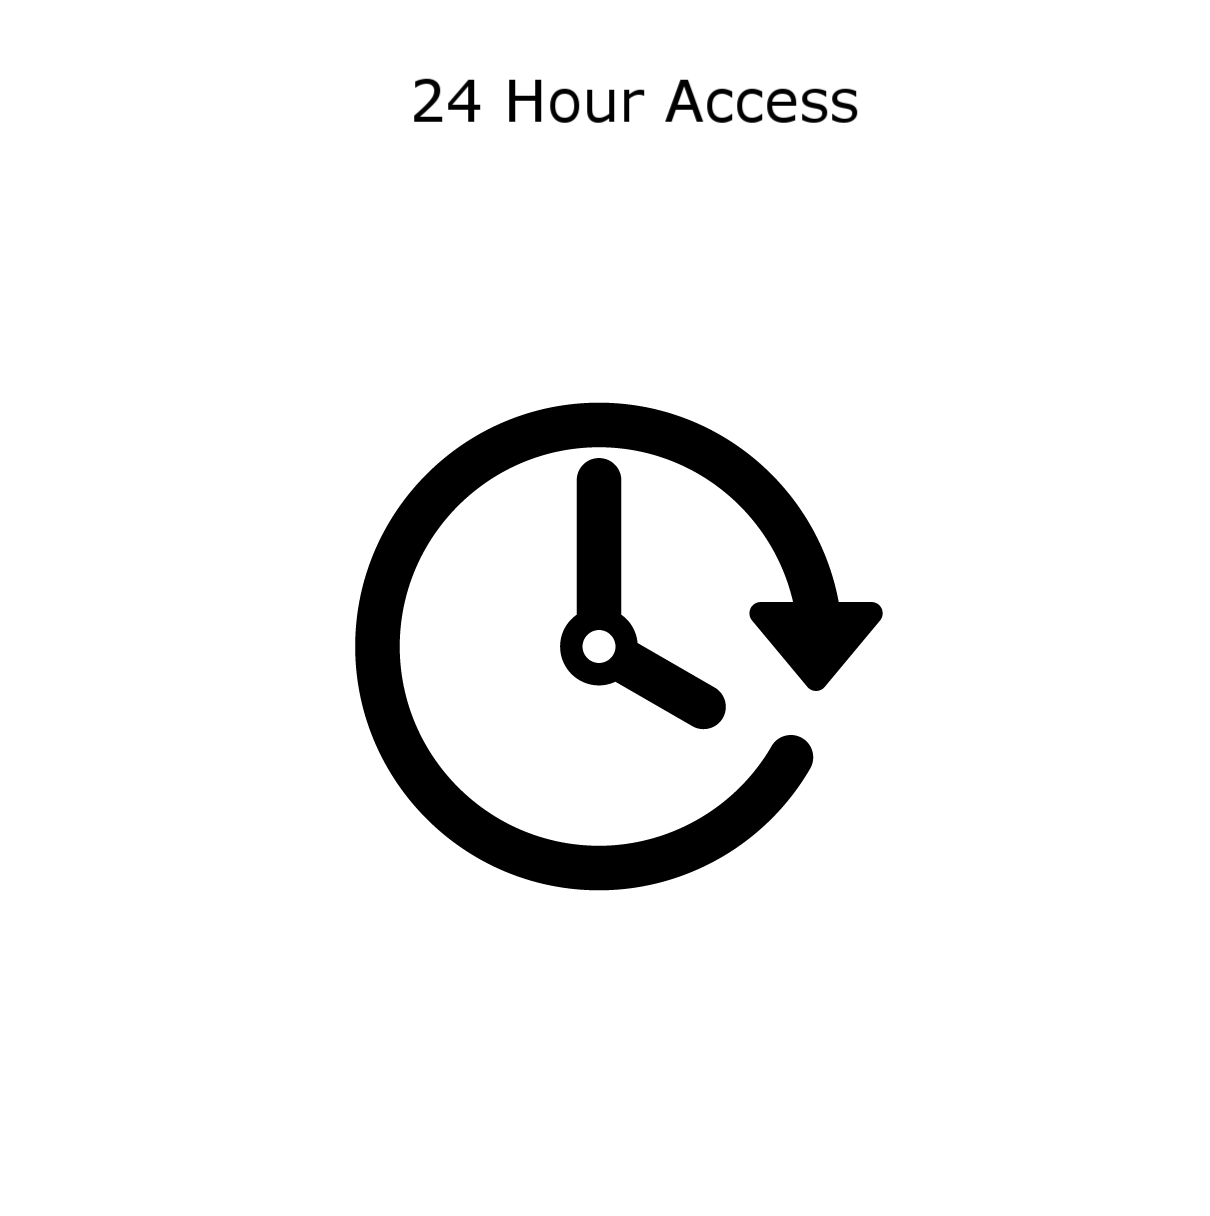 24 Hour Access